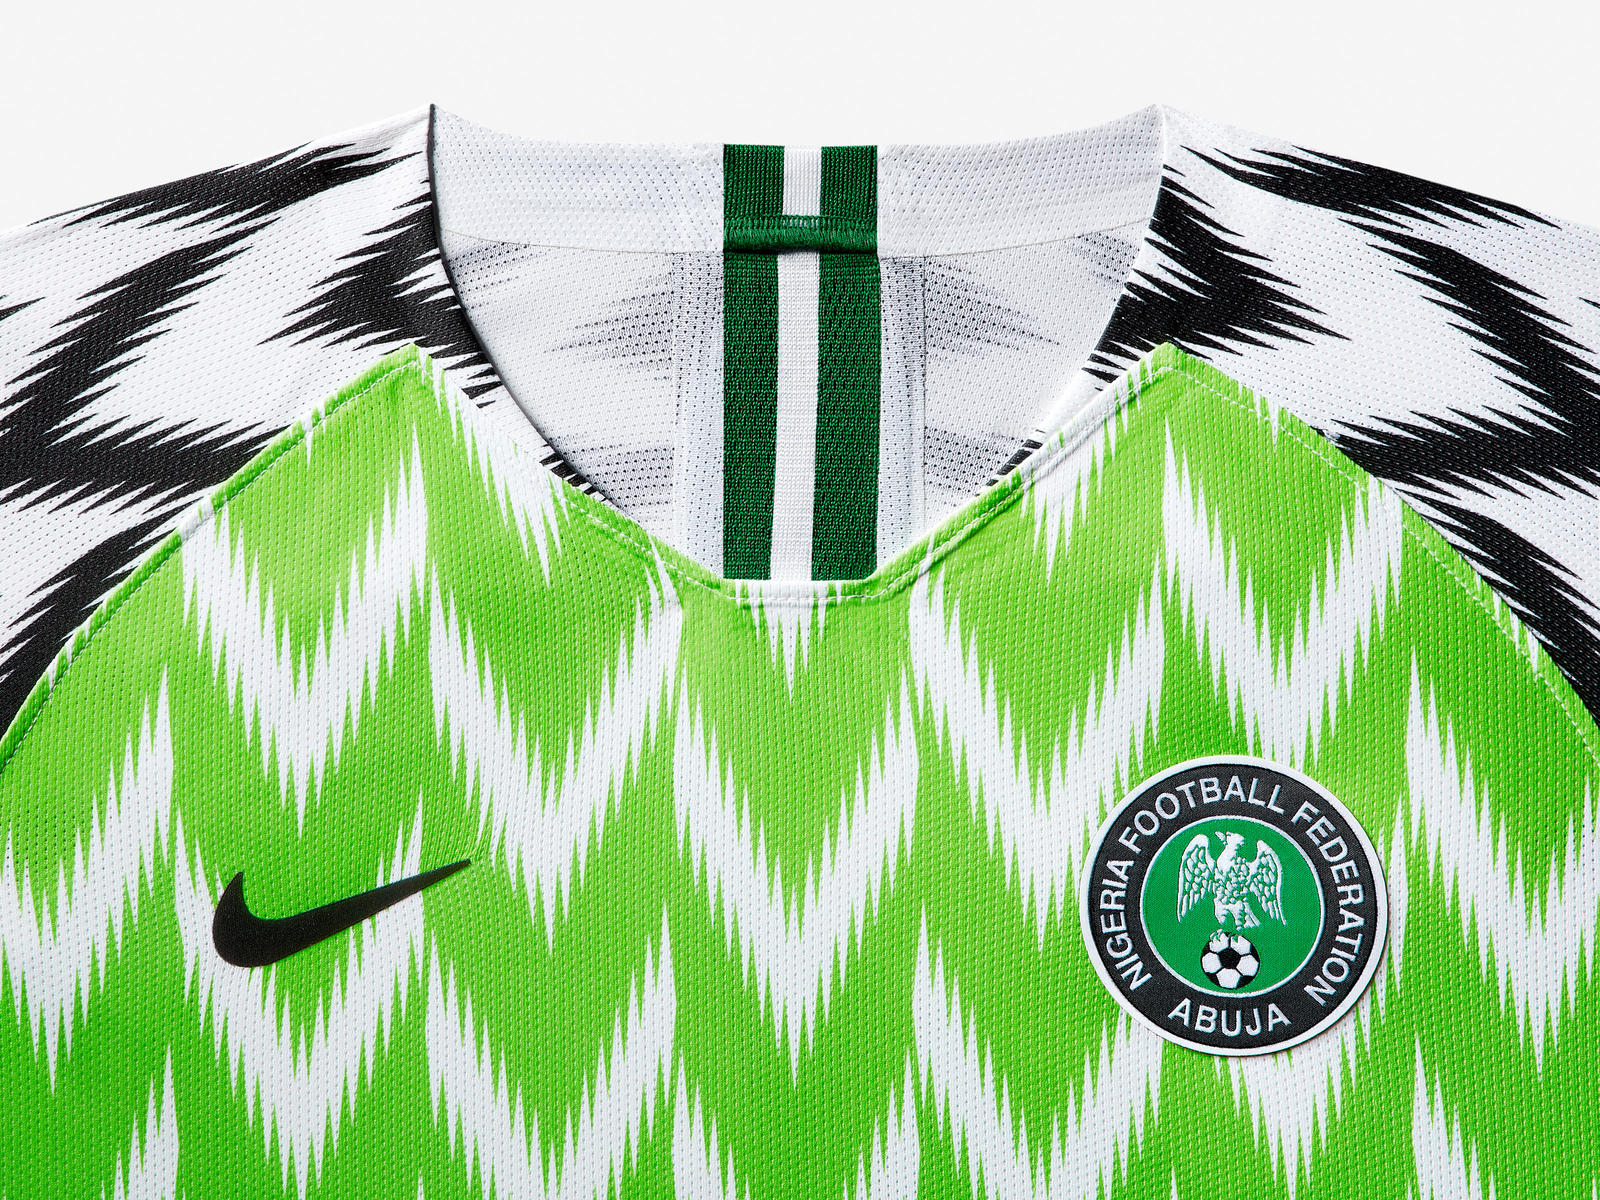 nigeria-national-team-kit-2019-laydown-003_85938.jpg